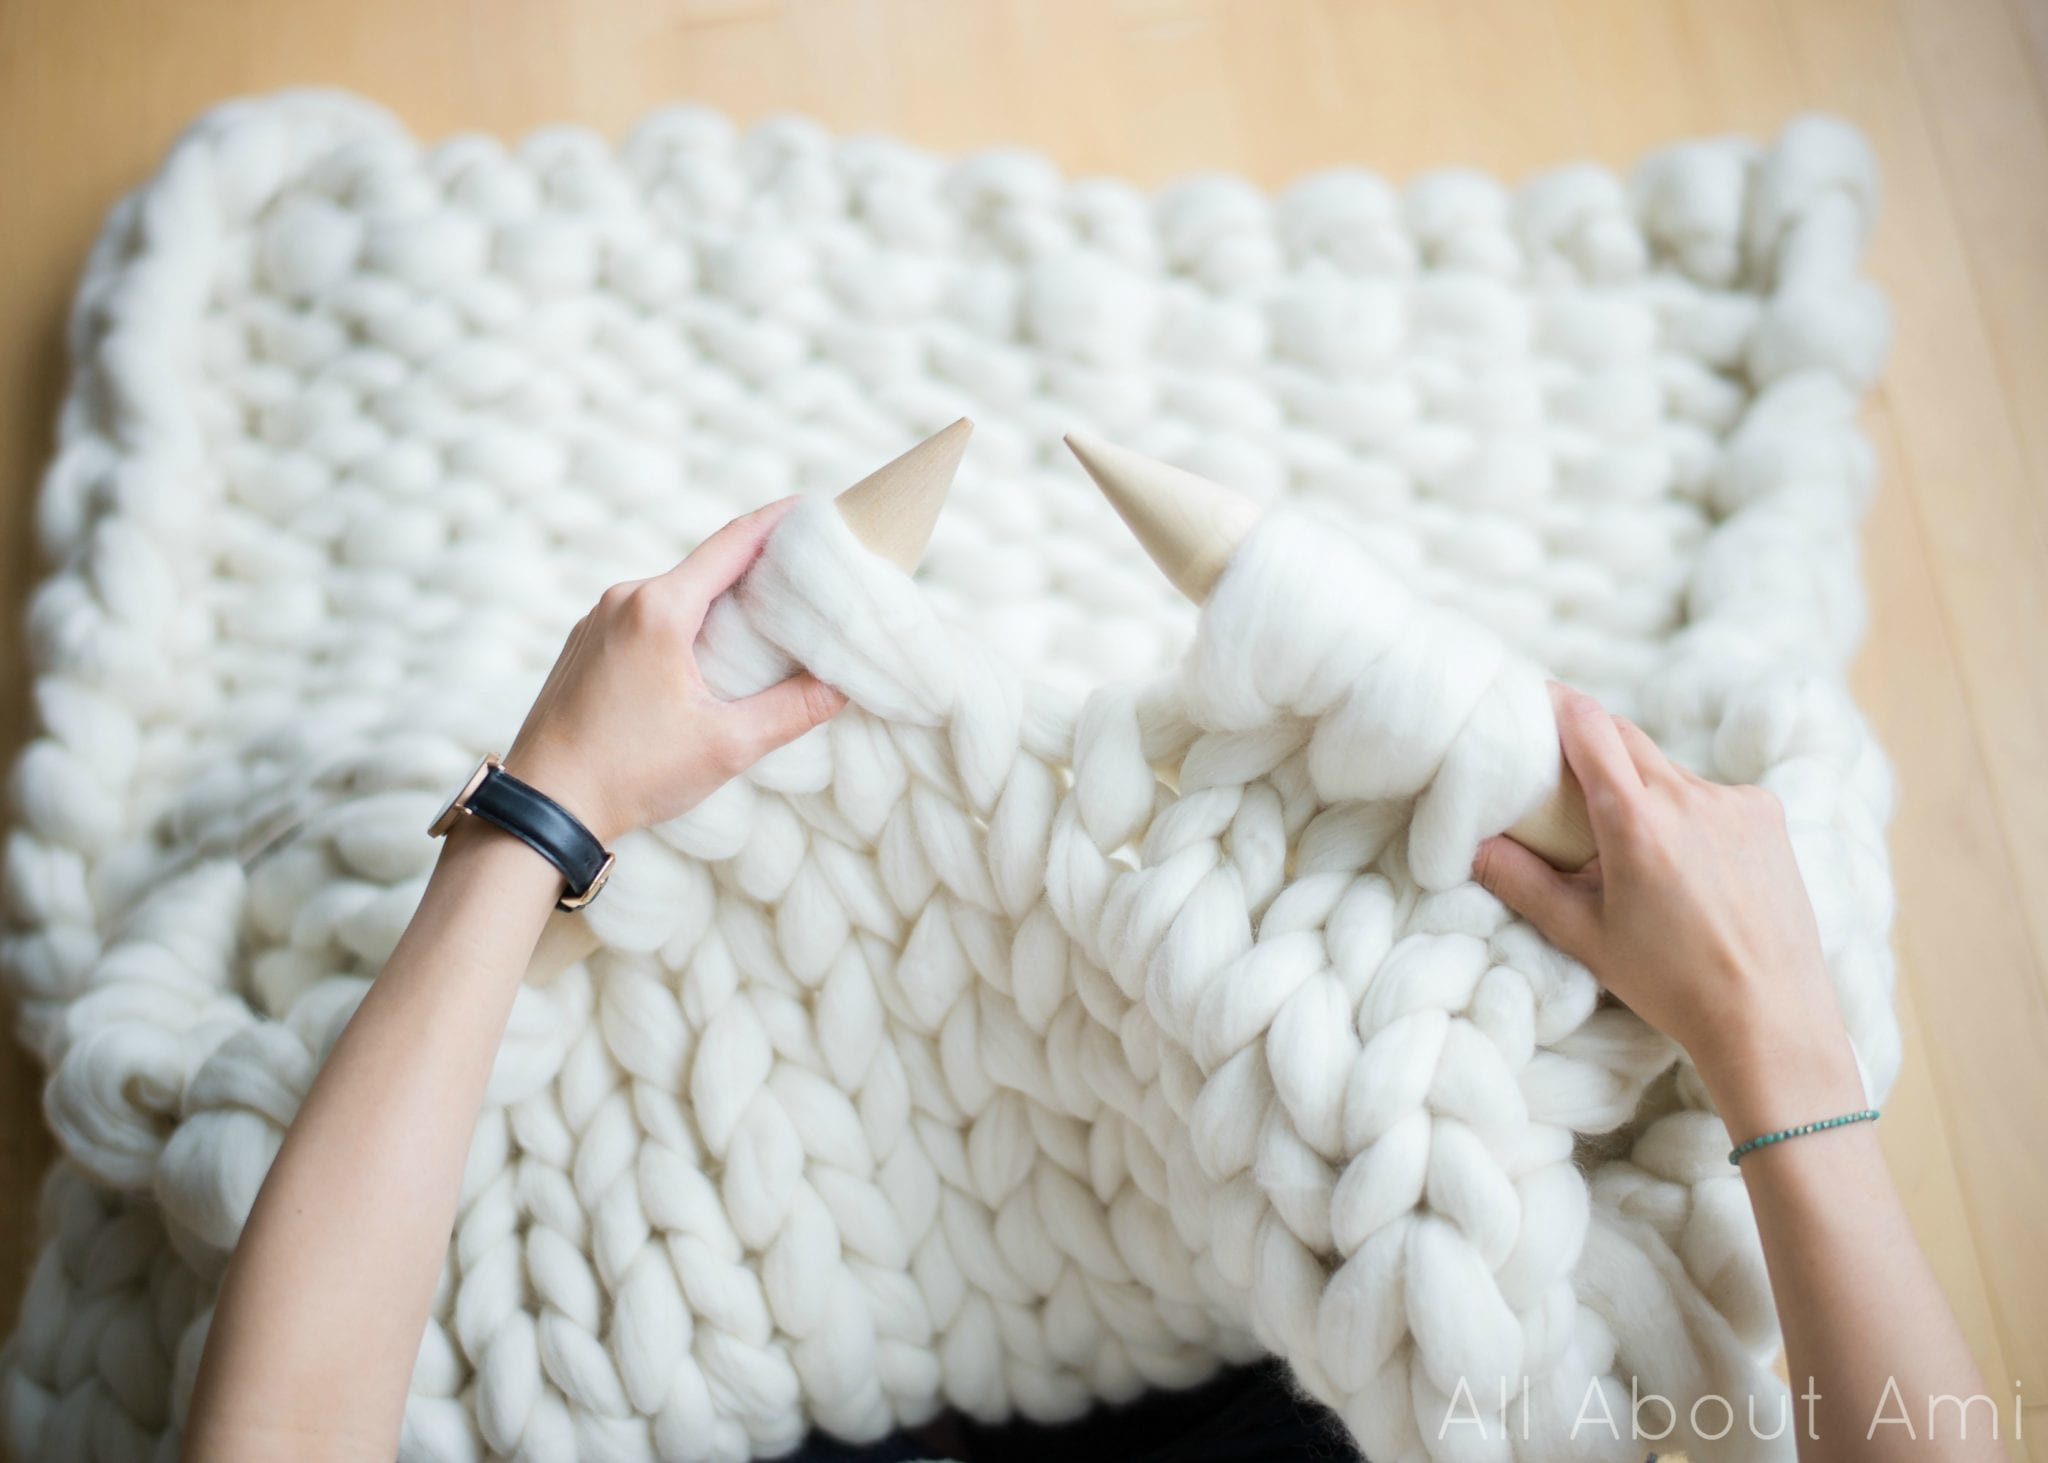 Jumbo Yarn Fresh Extreme Knitted Blanket All About Ami Of Incredible 40 Pictures Jumbo Yarn